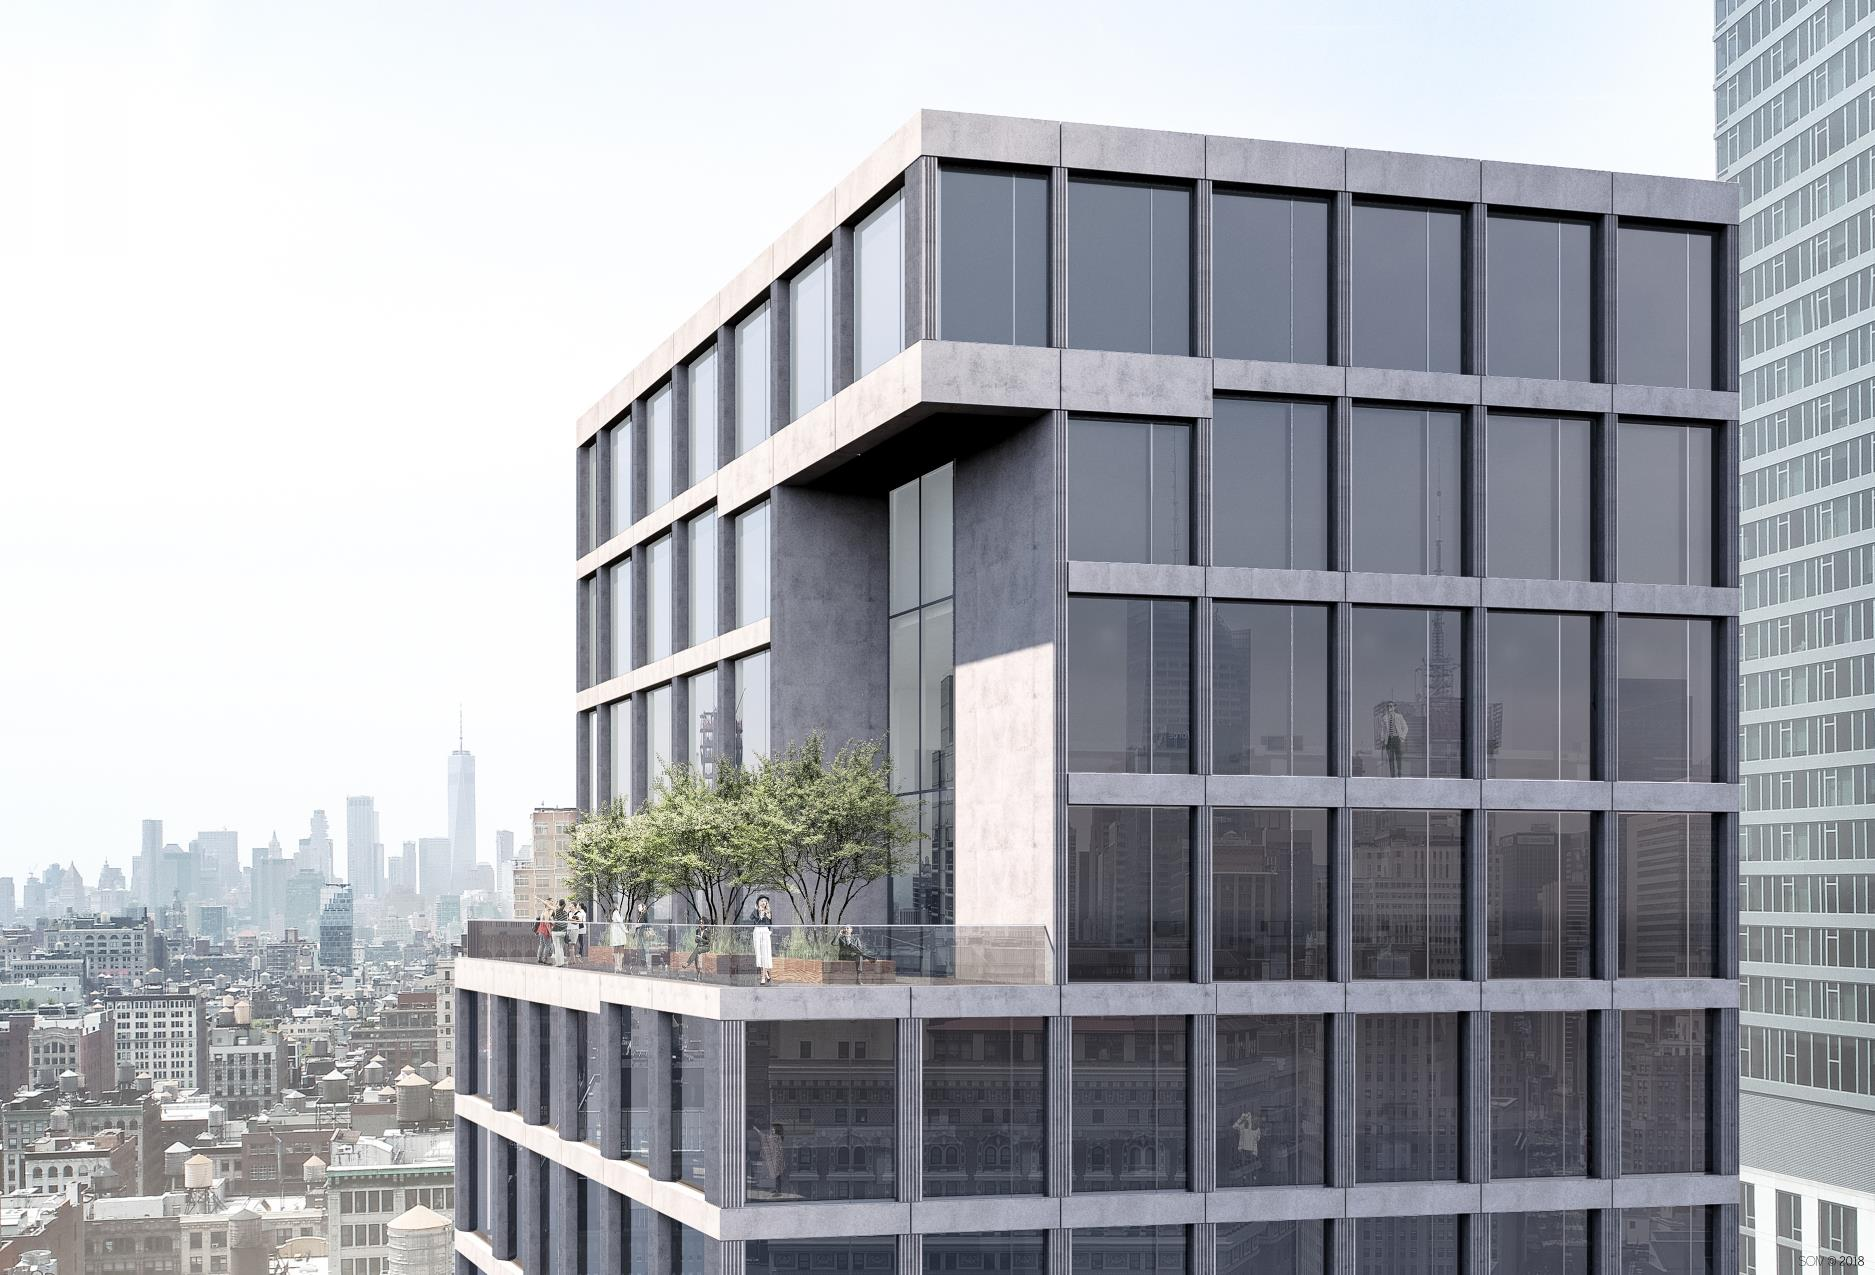 1241 Broadway, rendering from GDSNY